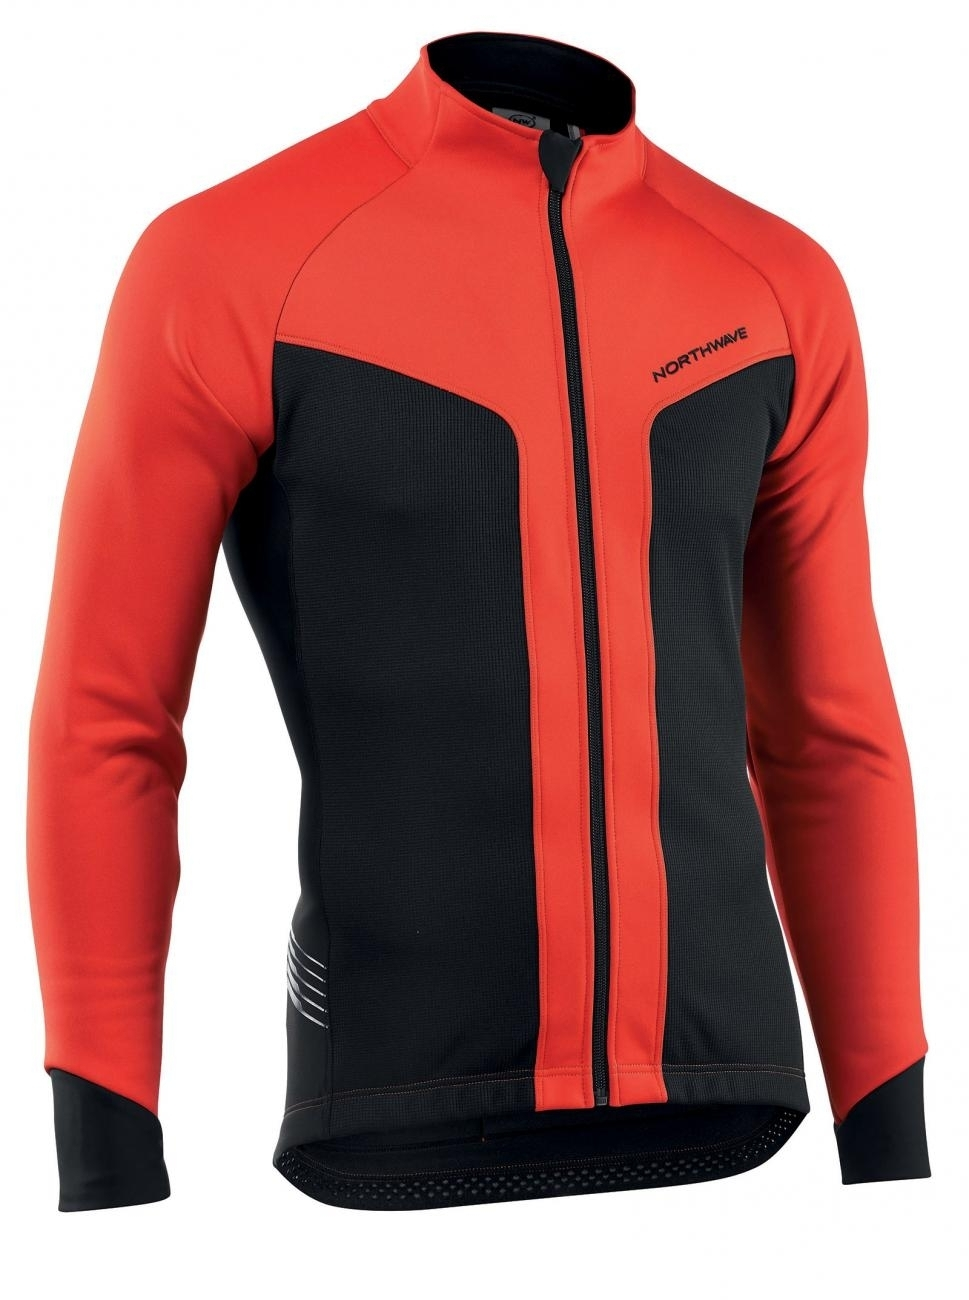 Best price Northwave Man cycling jacket RELOAD Italy2us.com